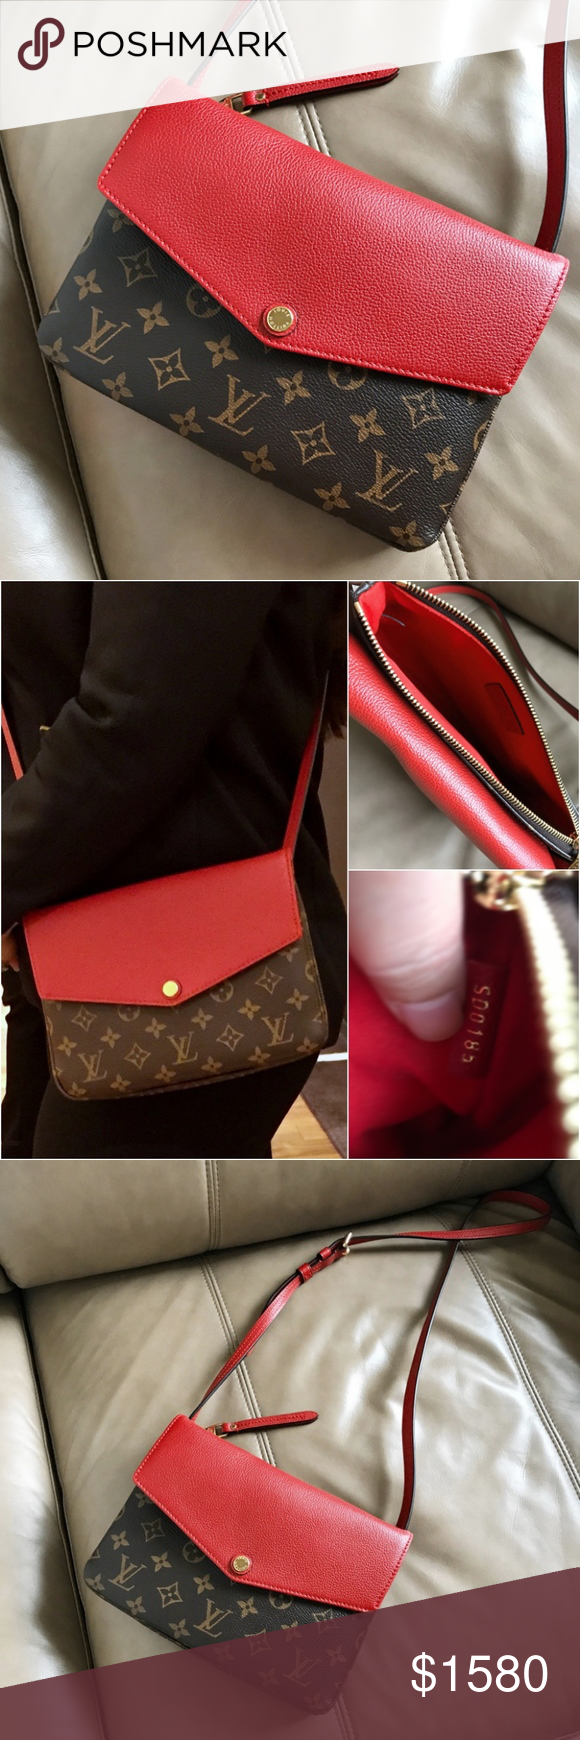 538162980 ... limited and had just discontinued, eye catching Louis Vuitton monogram  Twice Pochette Cerise Cherry canvas with red leather combination crossbody  bag, ...